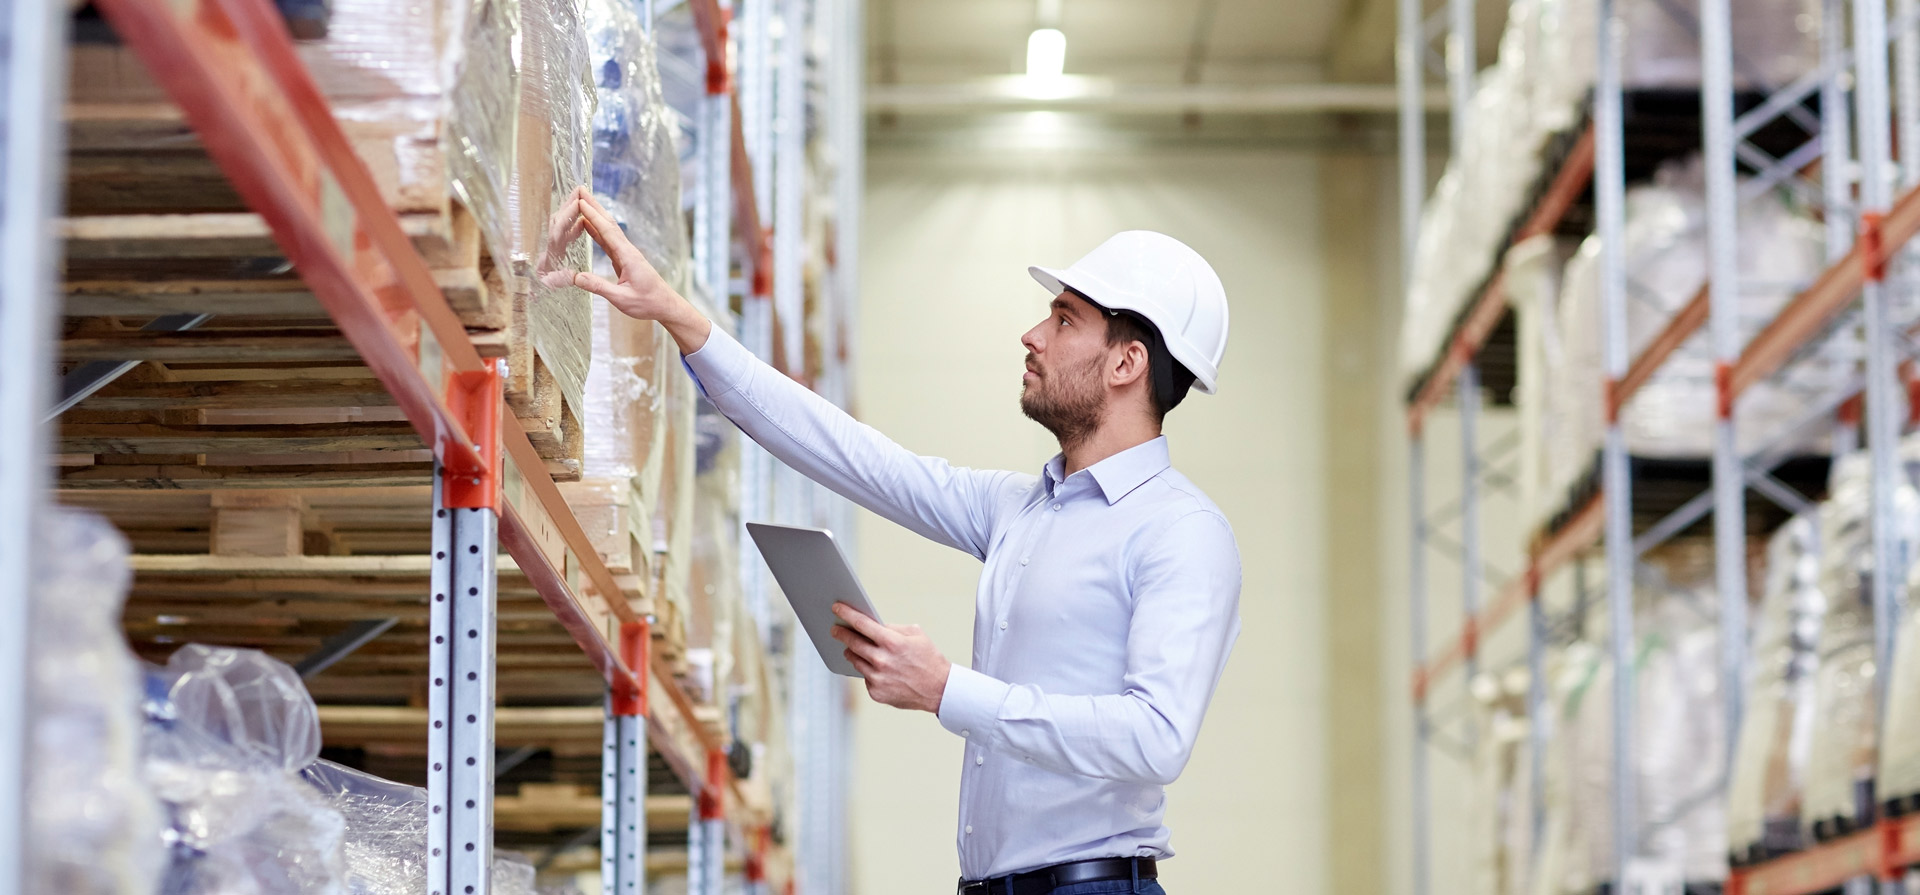 Collaboration, Agility, and Visibility: The Supply Chain Trifecta